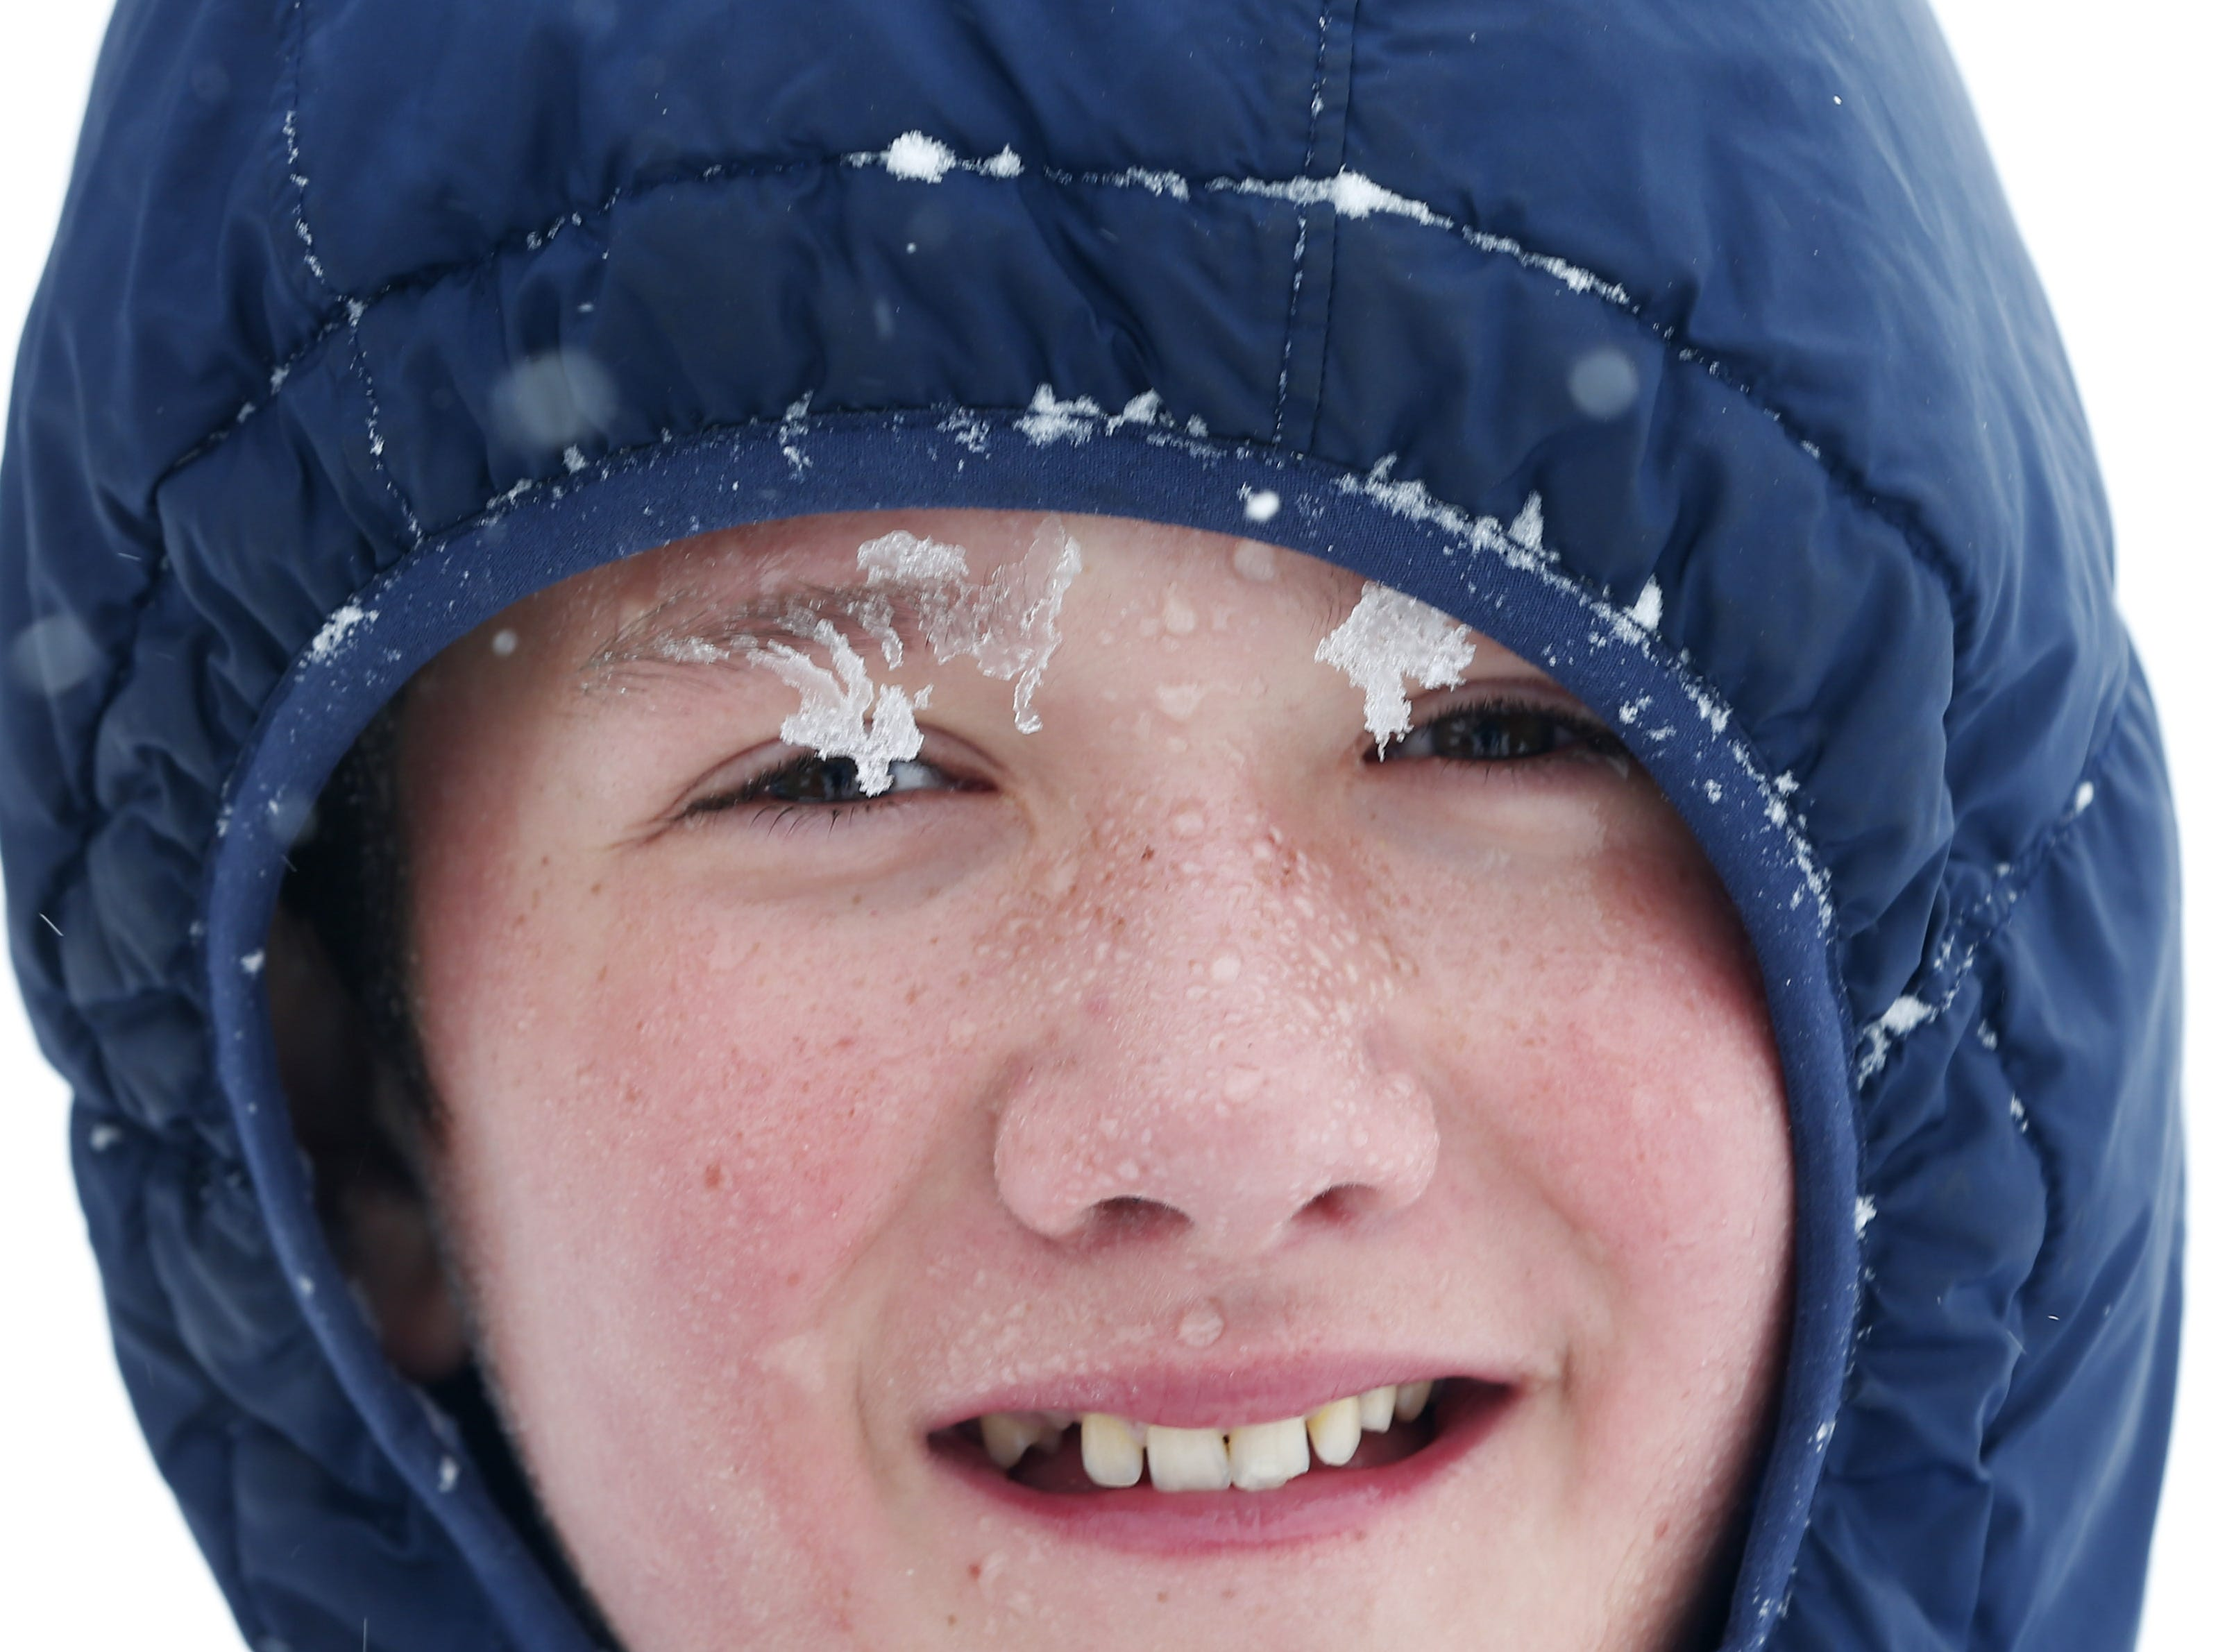 Micah Rhon, 11, is covered in snow in Flagstaff Feb. 18, 2019.